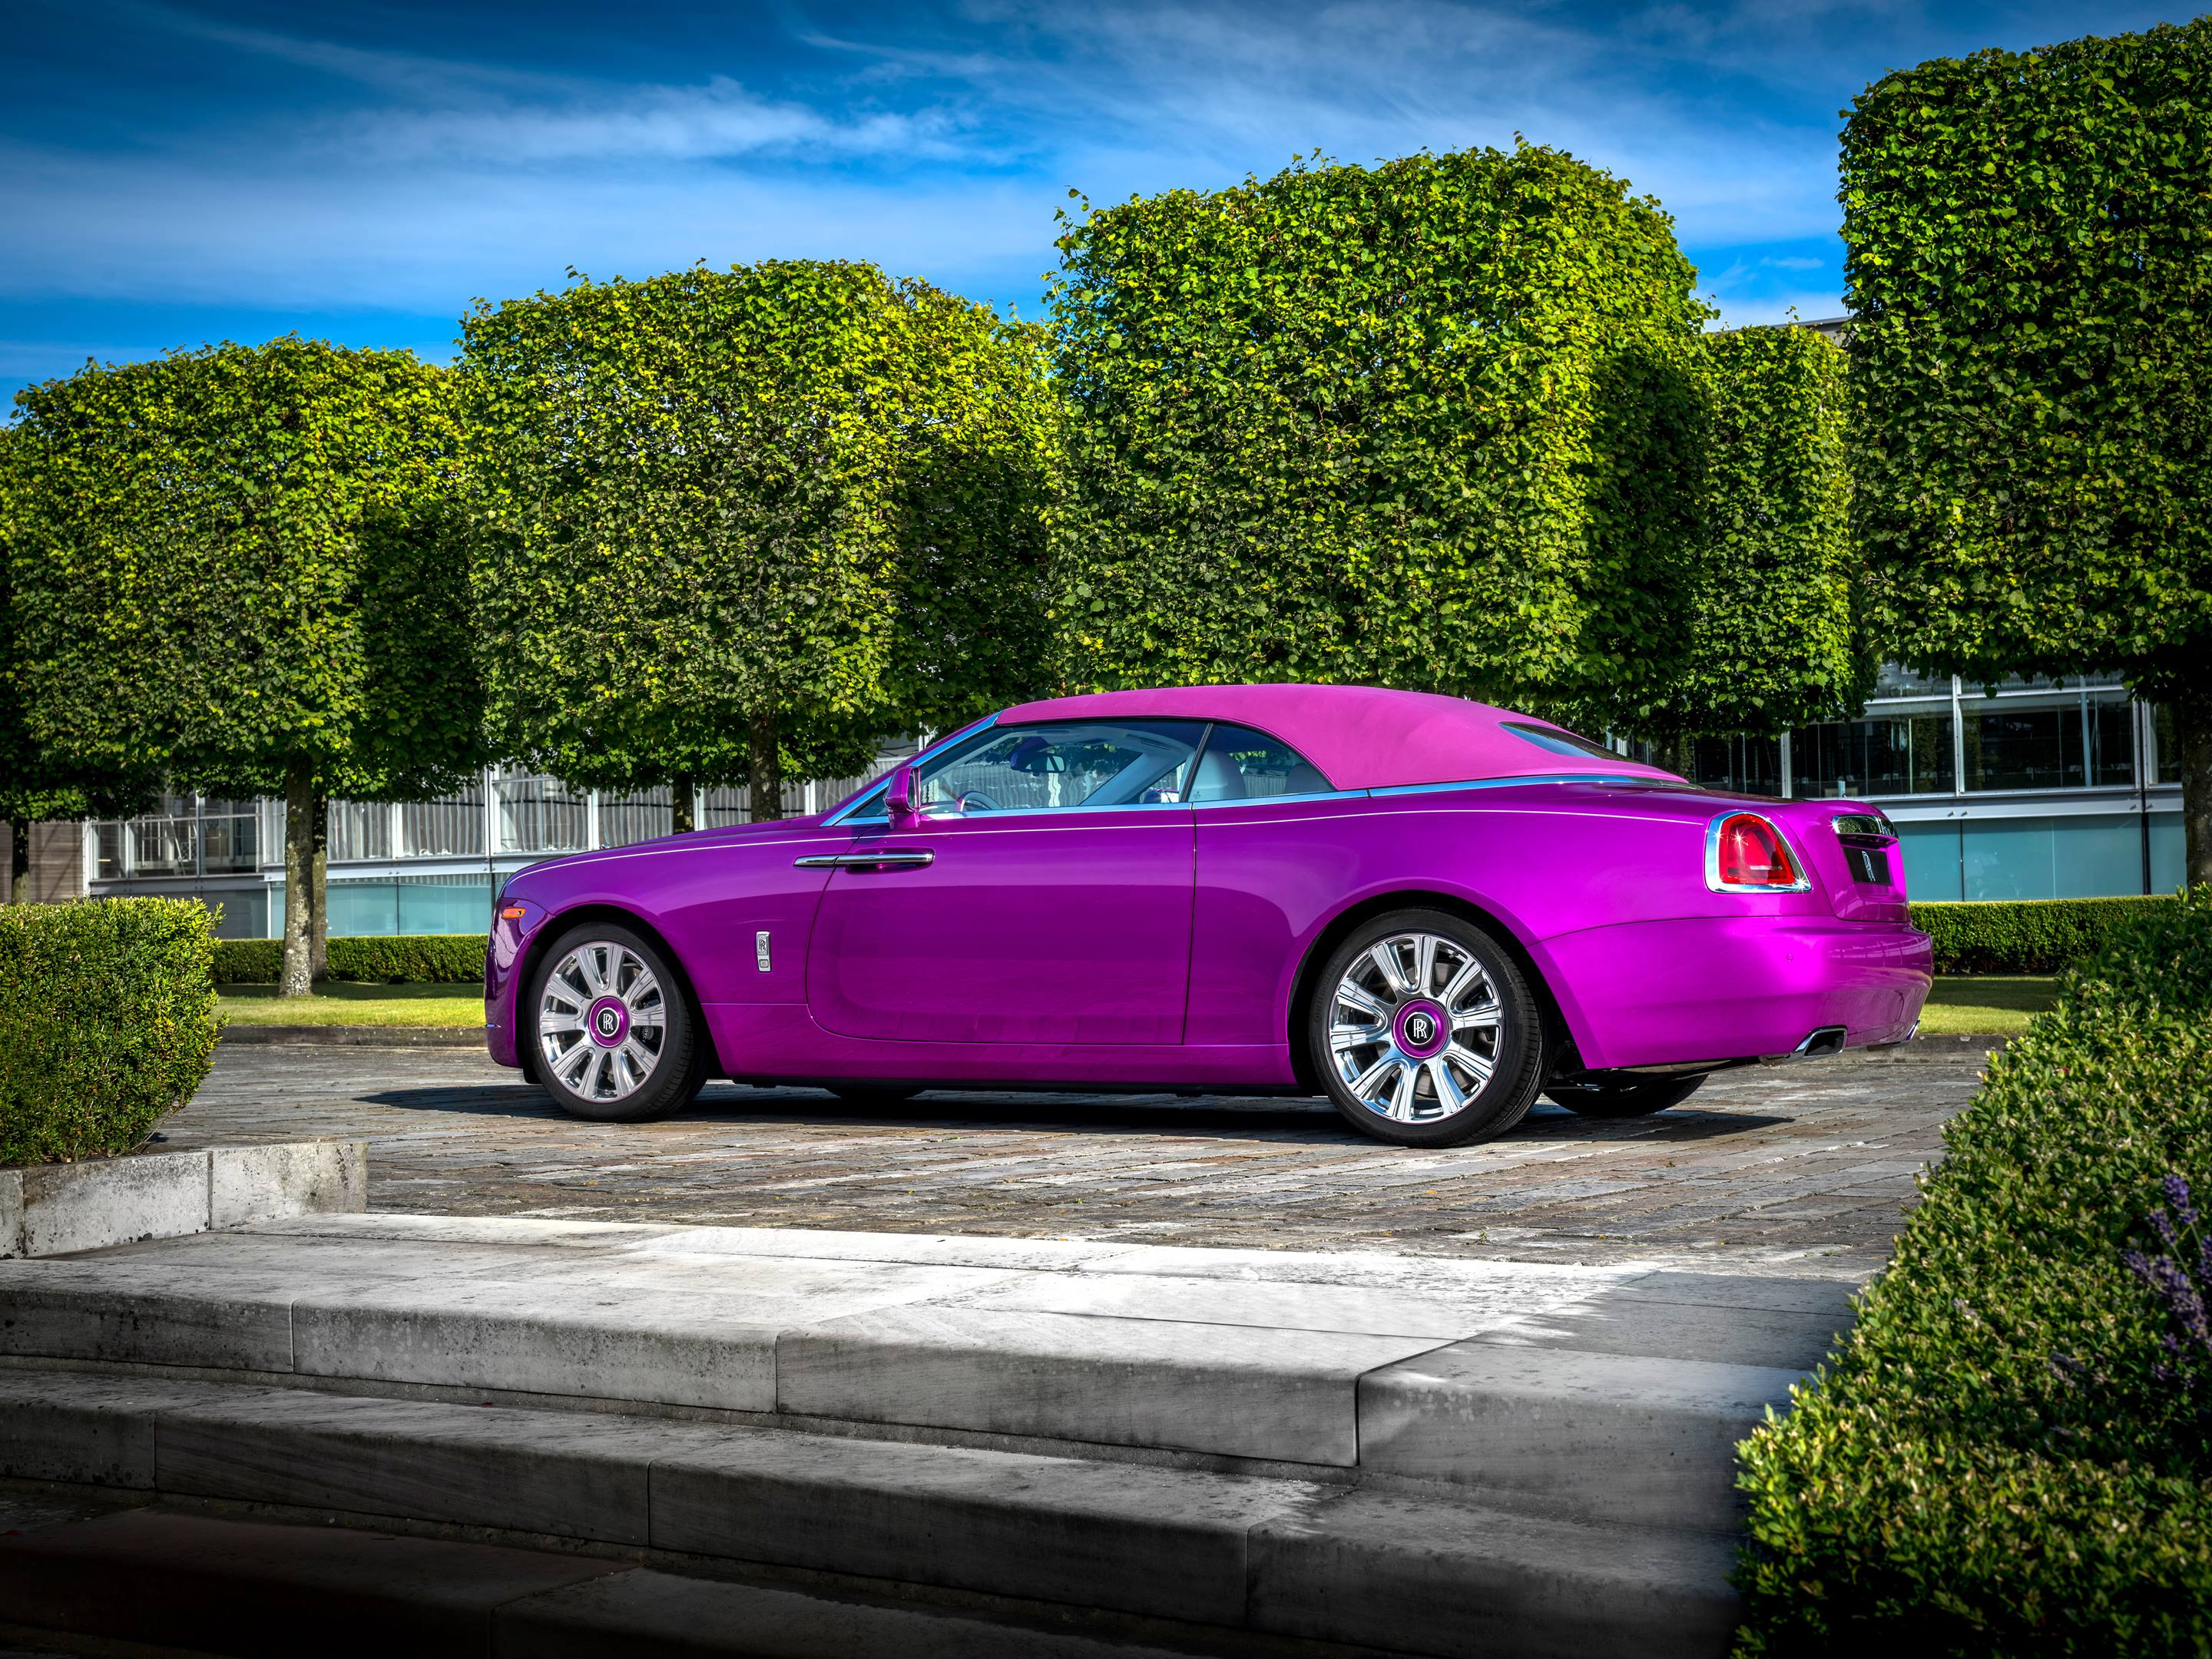 Michael Fux's Rolls-Royce Dawn convertible top up